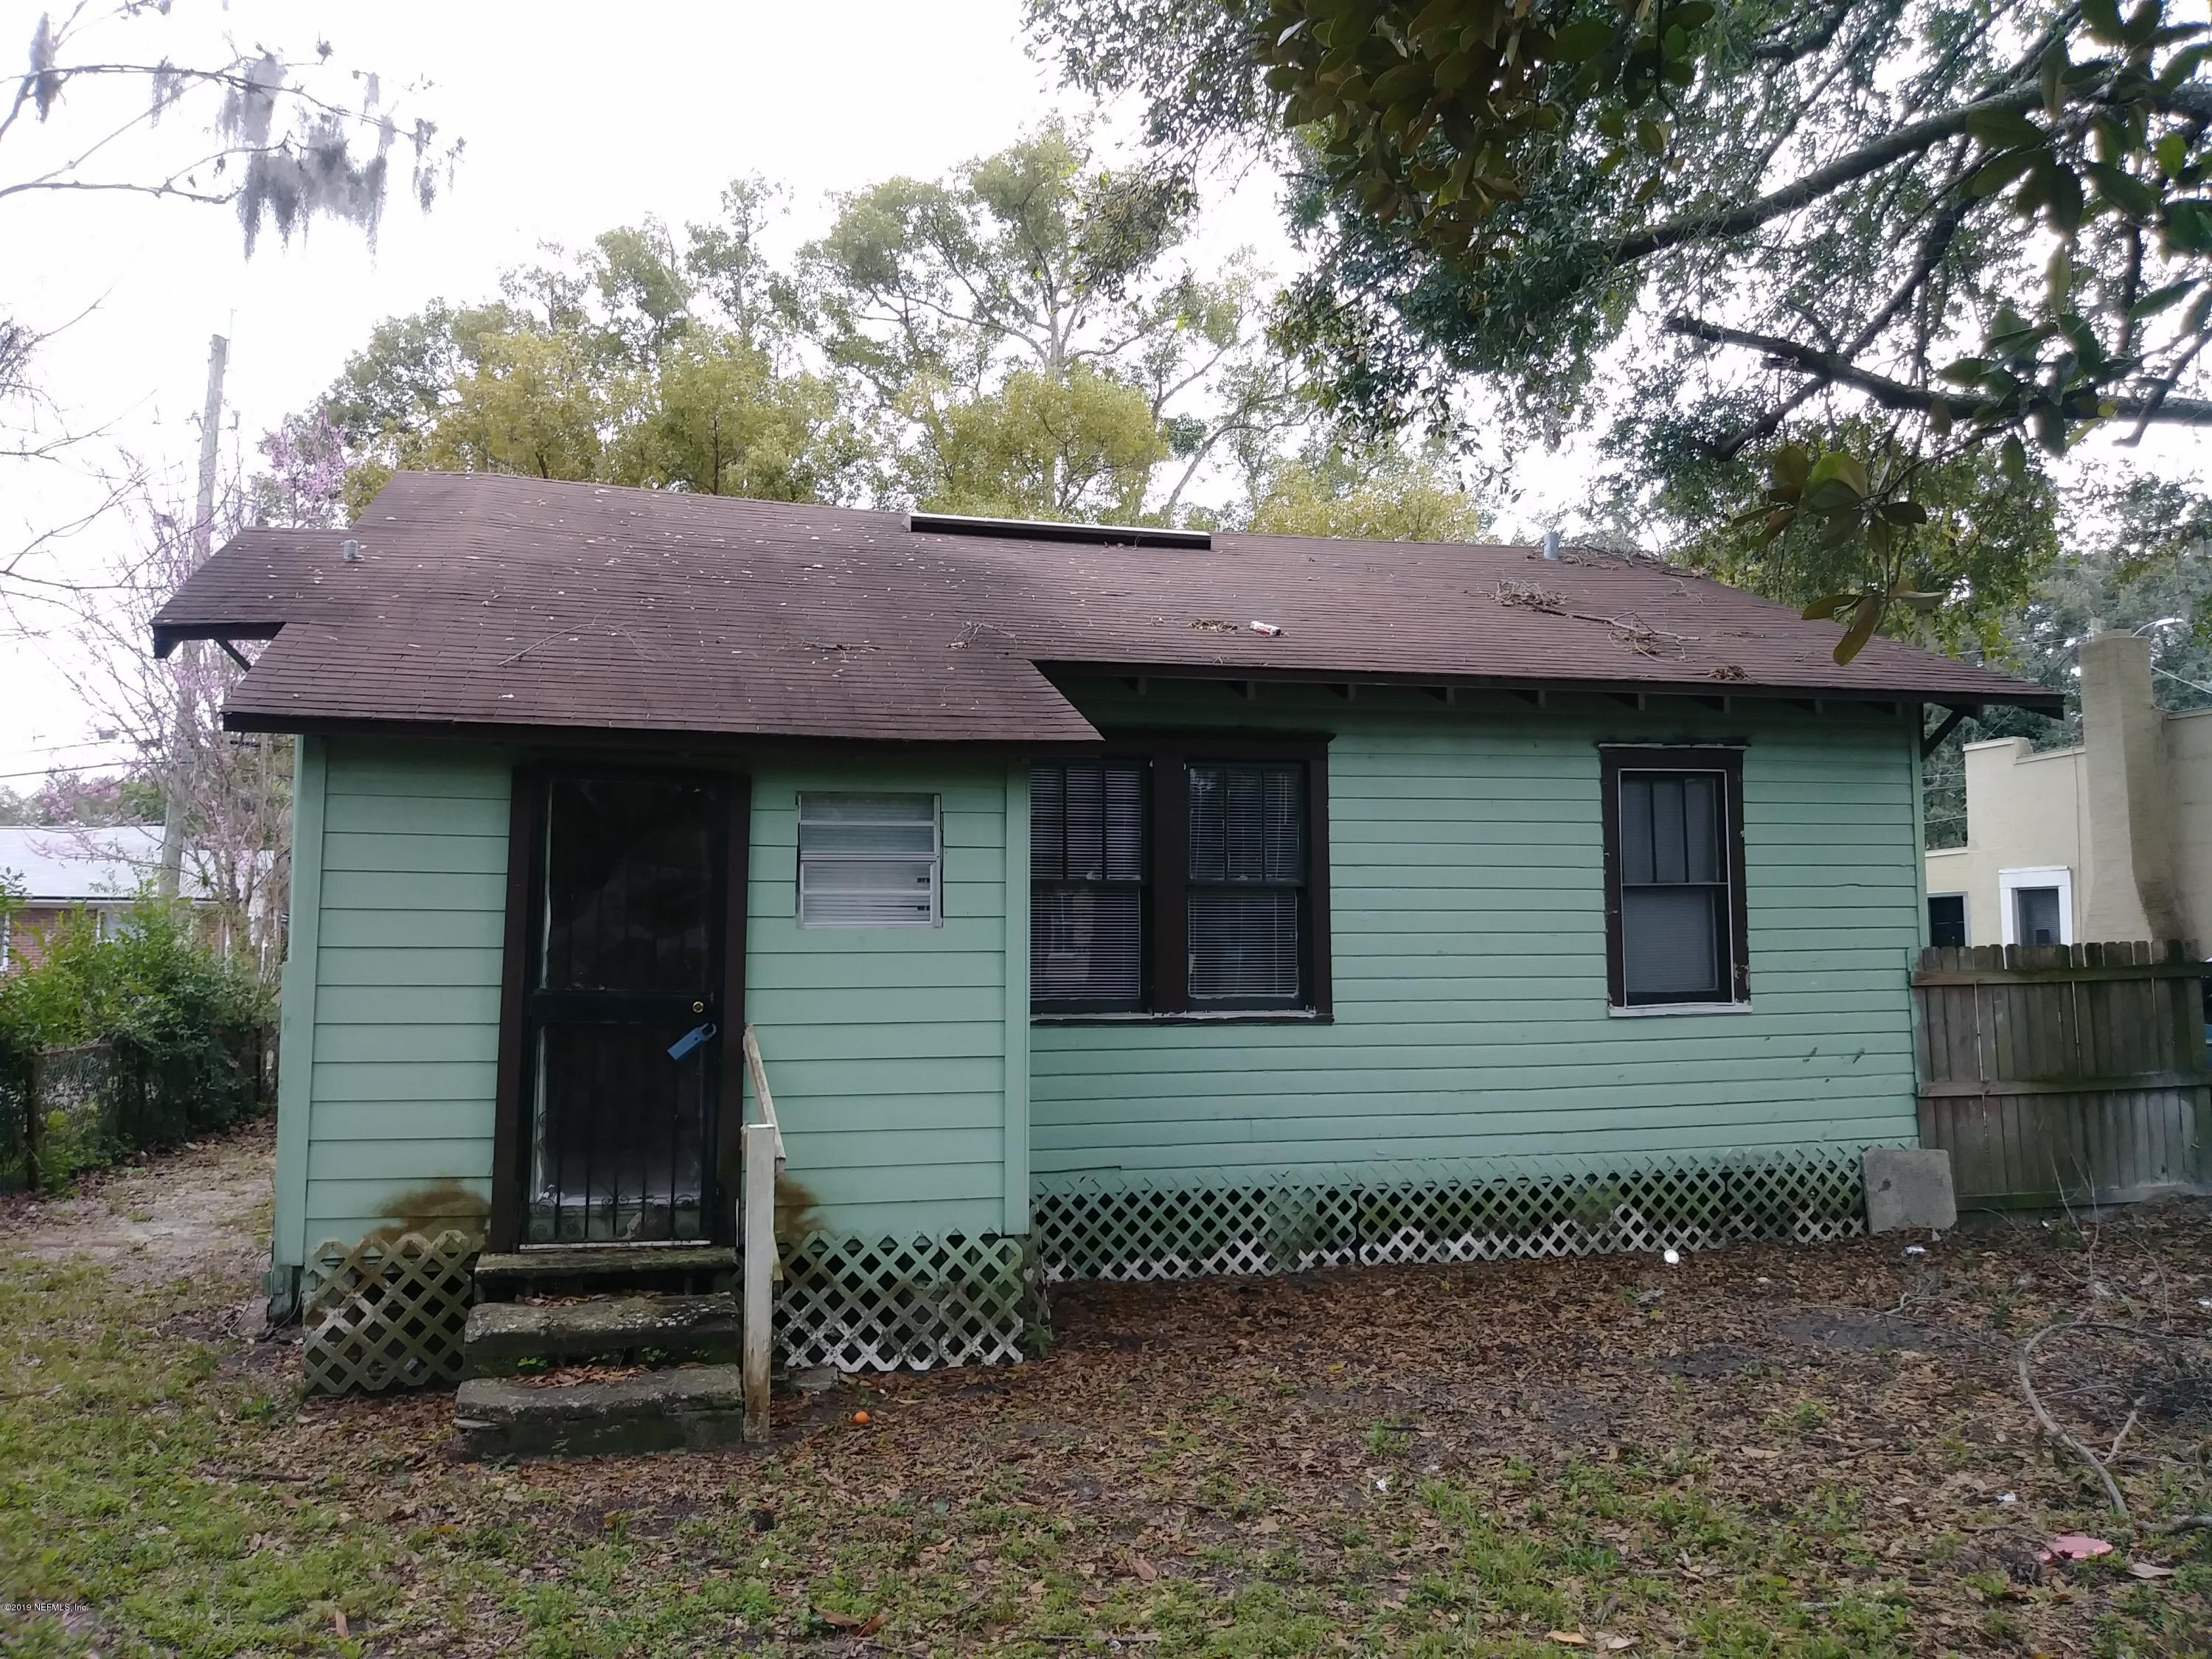 615 60TH, JACKSONVILLE, FLORIDA 32208, 2 Bedrooms Bedrooms, ,1 BathroomBathrooms,Residential - single family,For sale,60TH,979546